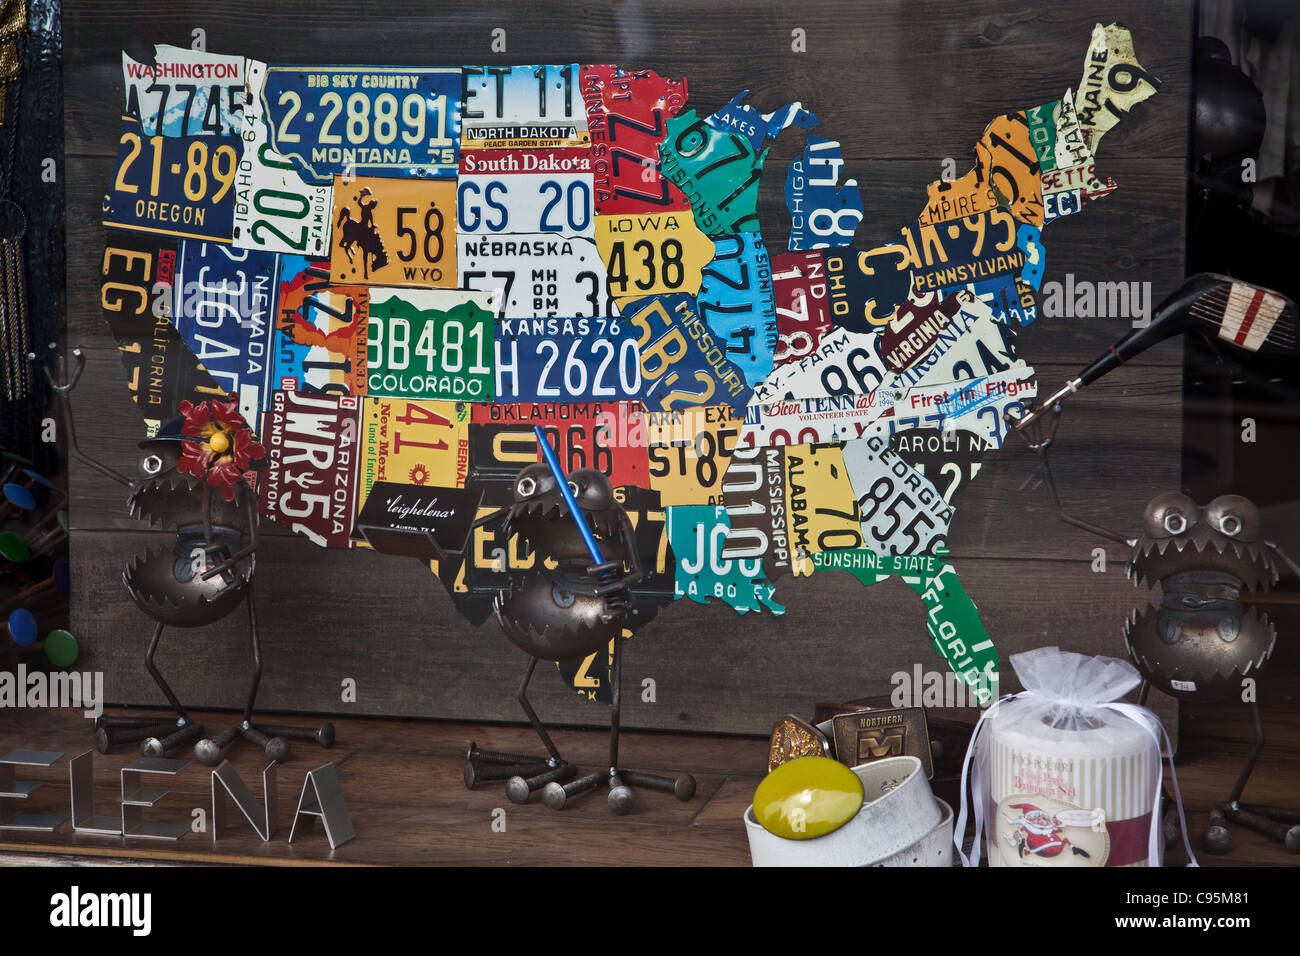 Map of America made out of license plates Stock Photo ... United States Map Made Out Of License Plates on using map of missouri license plates, united states map printable pdf, united states license plate game, 50 states license plates, united states map with scale, us map made of license plates, united states license plate designs, united states map art, united states licence plates, united states license plates 2014, united states map printout, furniture made from license plates,